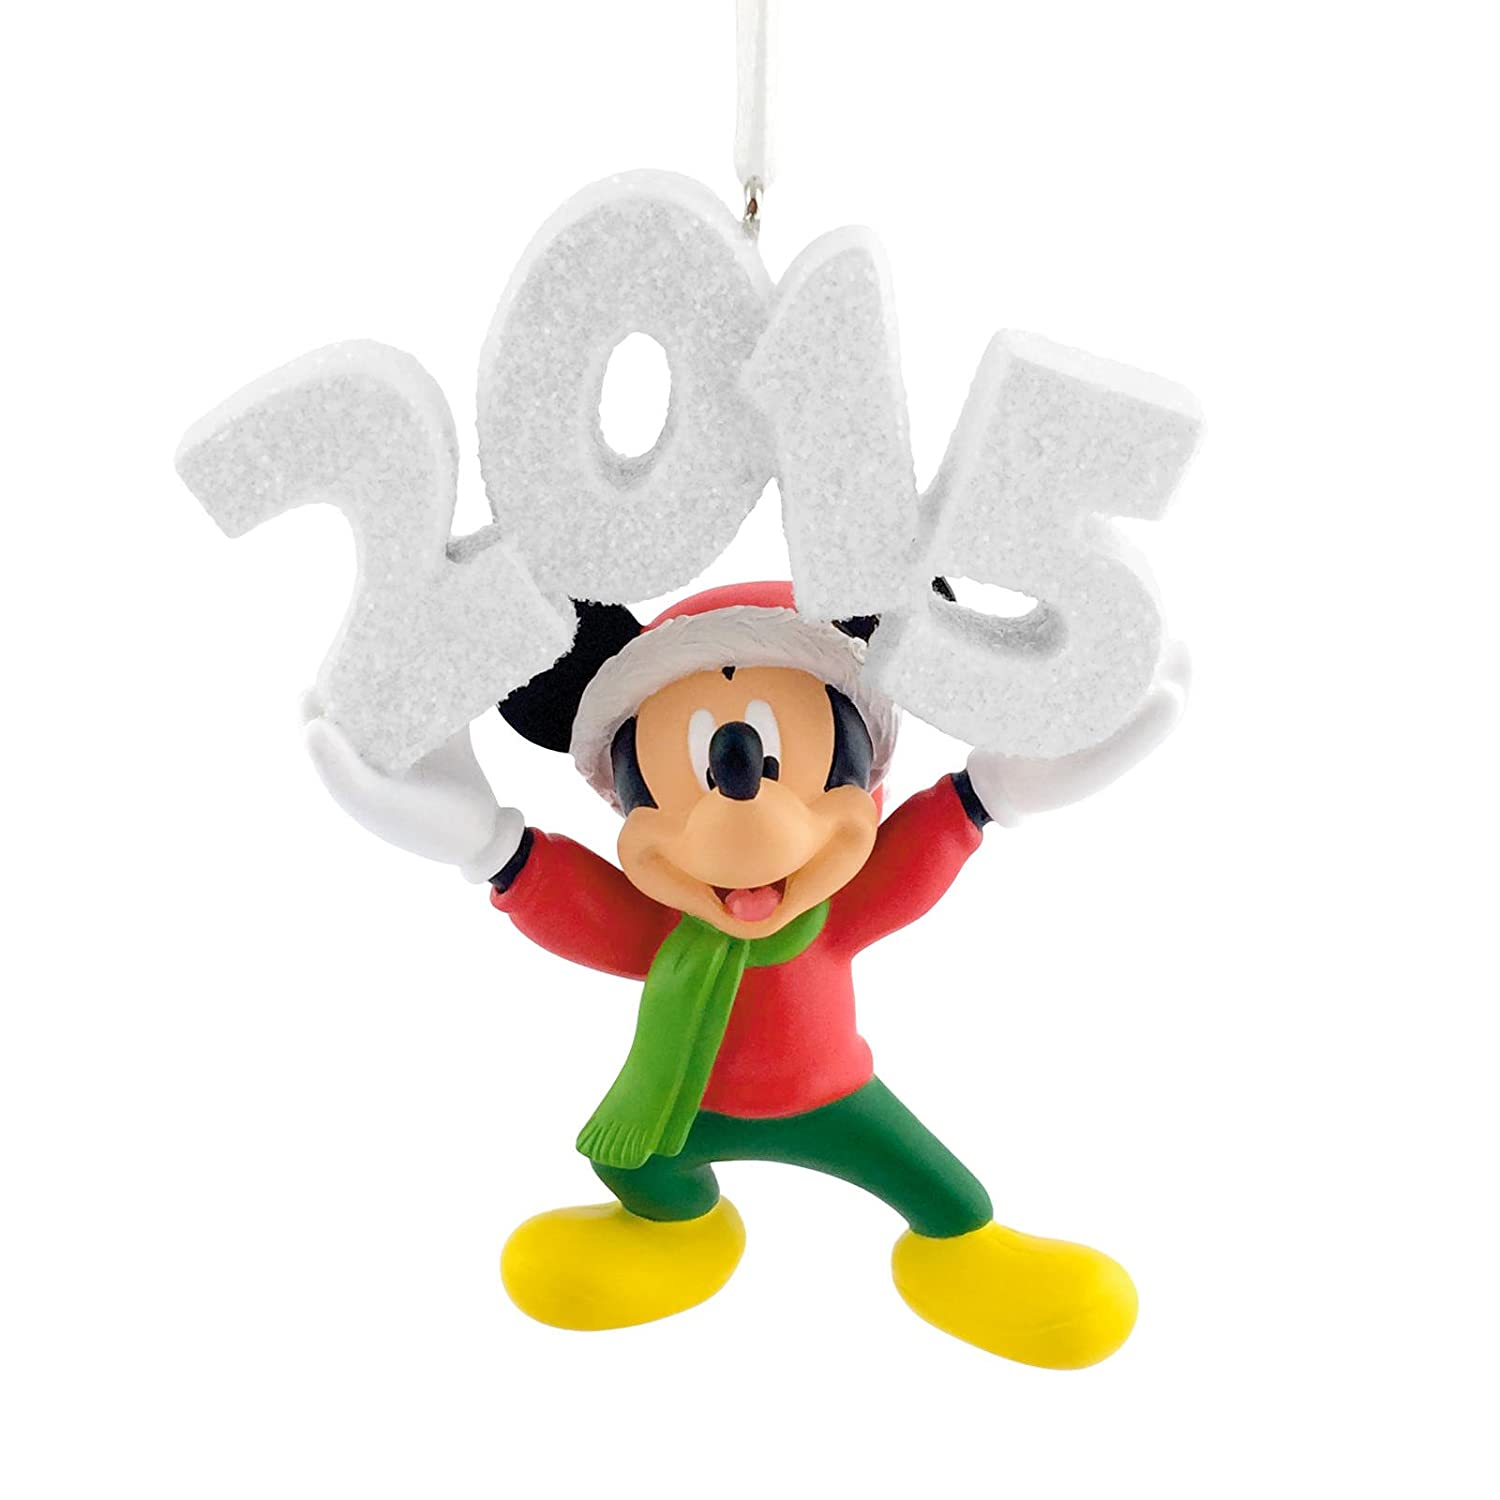 Amazoncom Hallmark Disney Mickey Mouse Dated 2015 Christmas